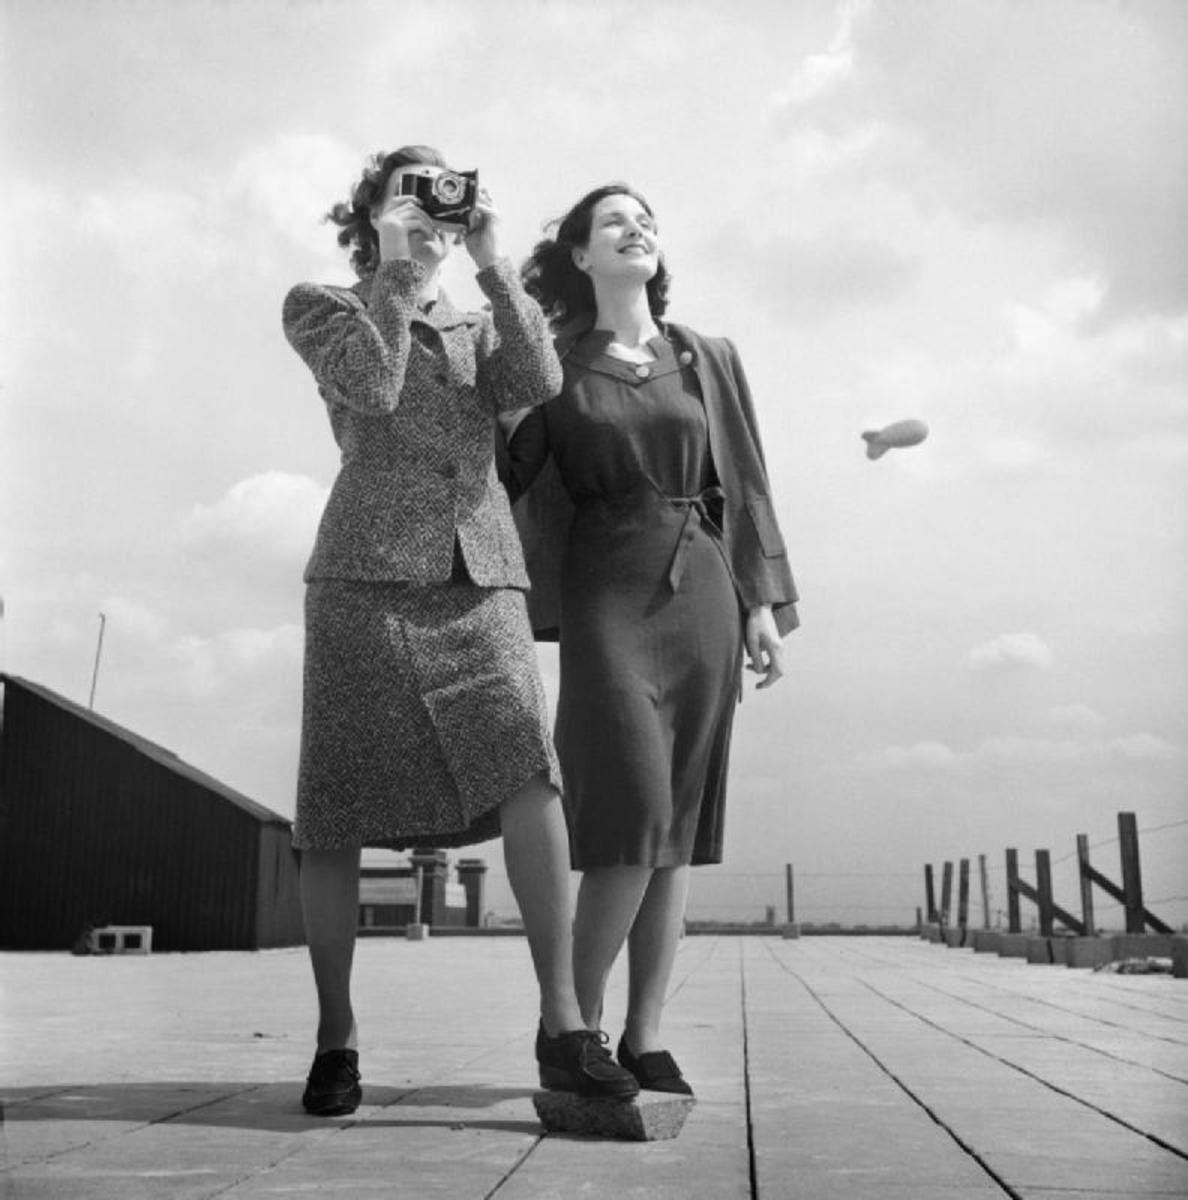 1943: The simple dresses of wartime featured short hemlines. There is a barrage balloon in the background.